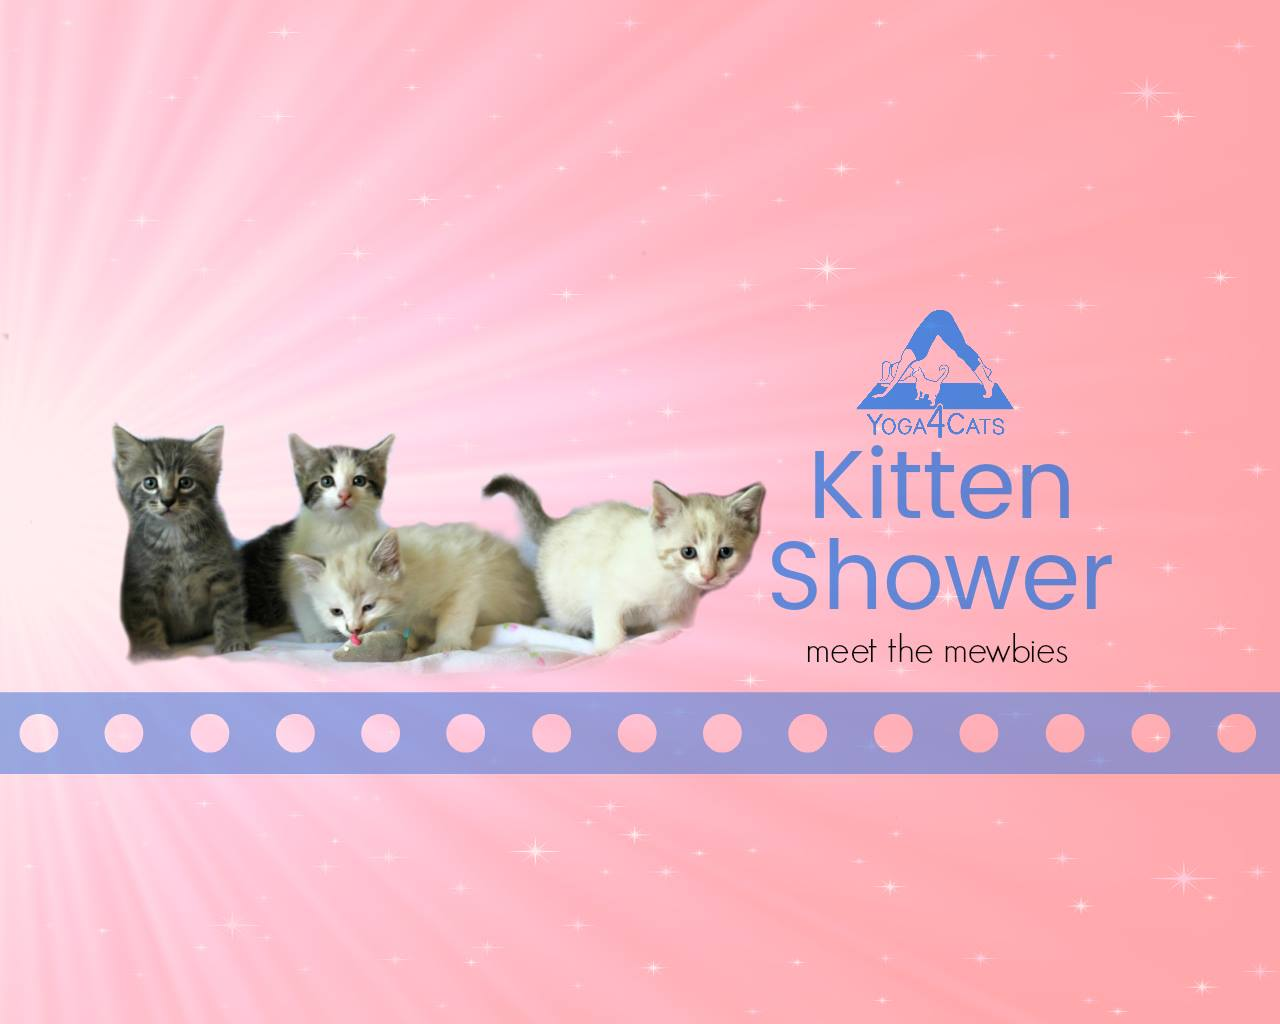 Meet the #mewbies and other adoptable #deCATurFosters! Bring a suggested donation from our PetSmart wish list and play kitten-themed baby games. Stop by anytime during this fun event to get your kitten fix or apply to adopt!  Saturday, June 2nd 11:30am-2:30pm at PetSmart  1460 Koester Dr Forsyth, IL 62535